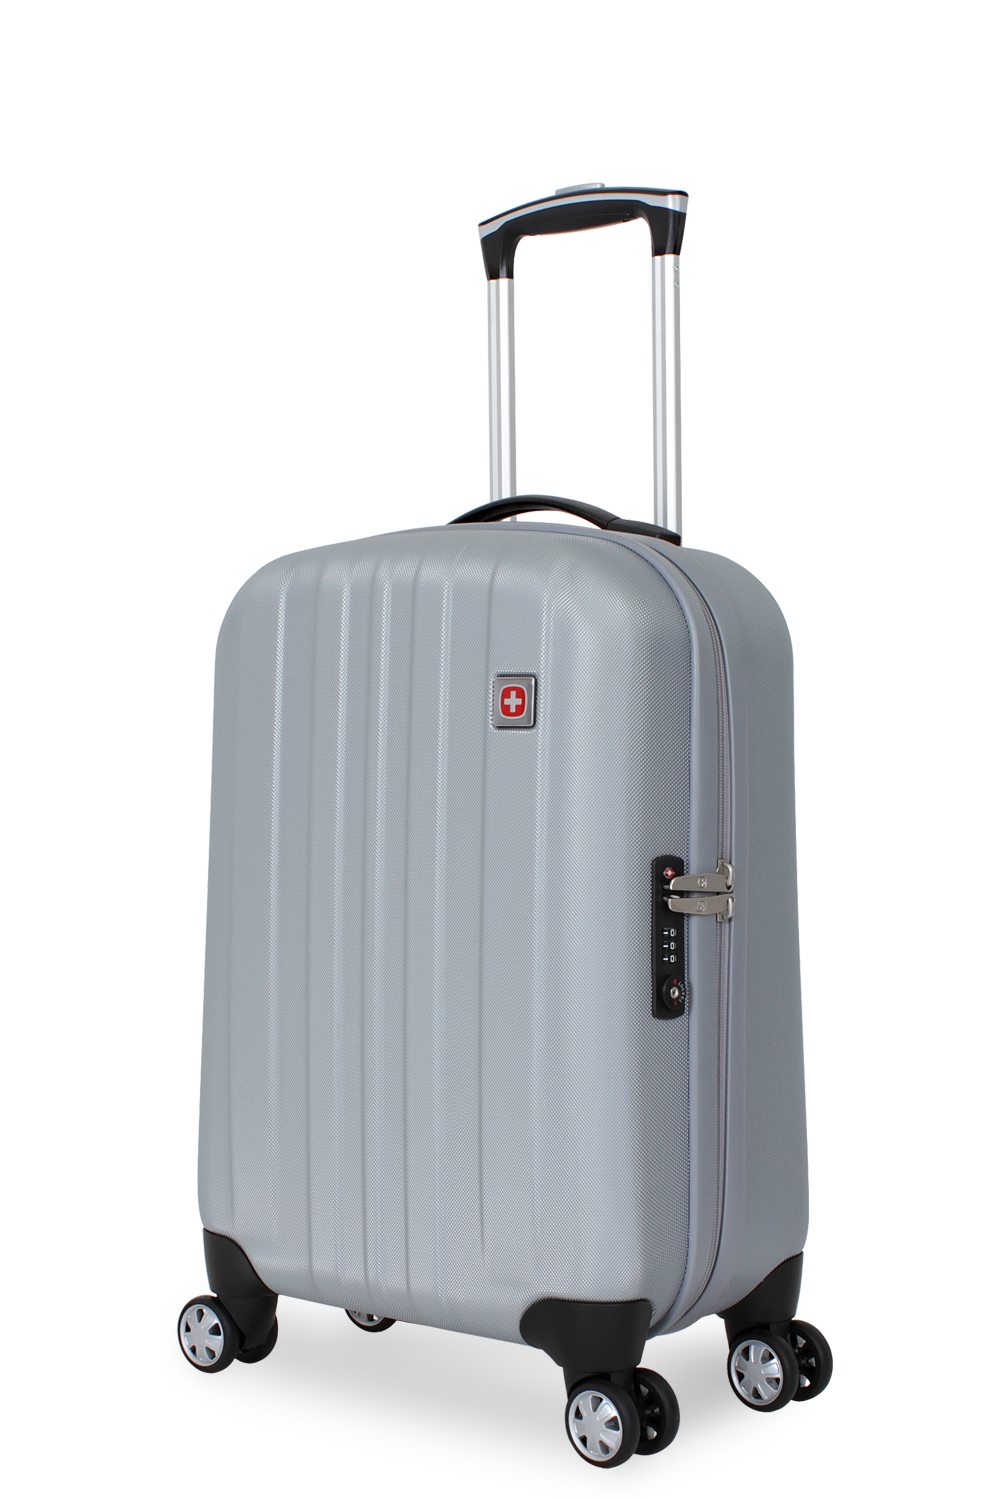 SWISSGEAR 6151 20 Deluxe Hardside Carry-On Spinner Luggage